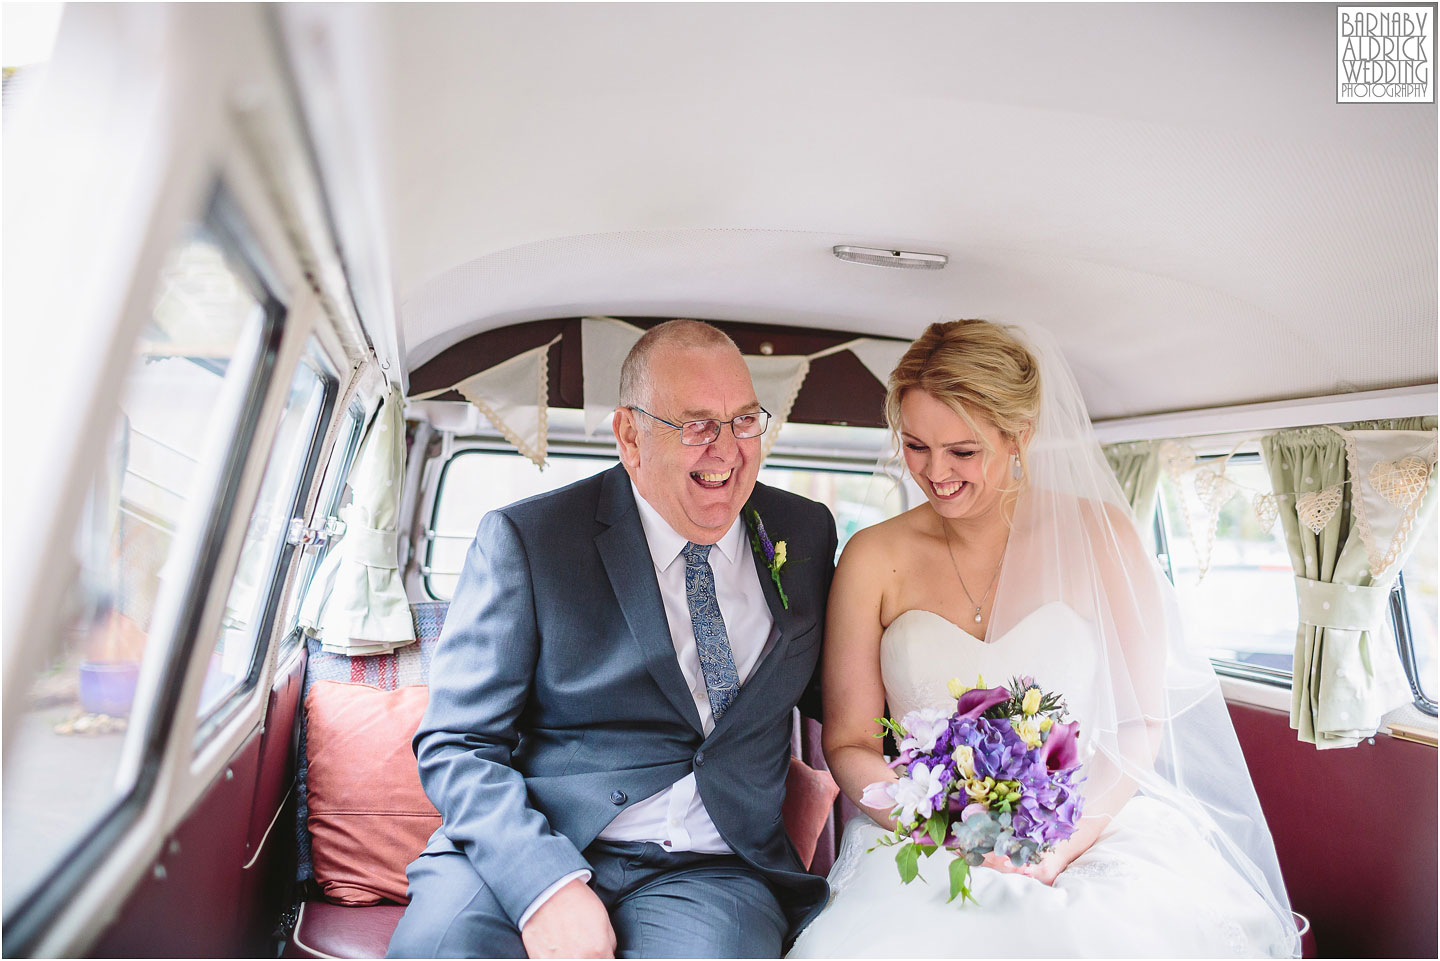 Camper van wedding photo on the way to a standedge tunnel ceremony, Marsden Wedding, Amazing Yorkshire Wedding Photos, Best Yorkshire Wedding Photos 2018